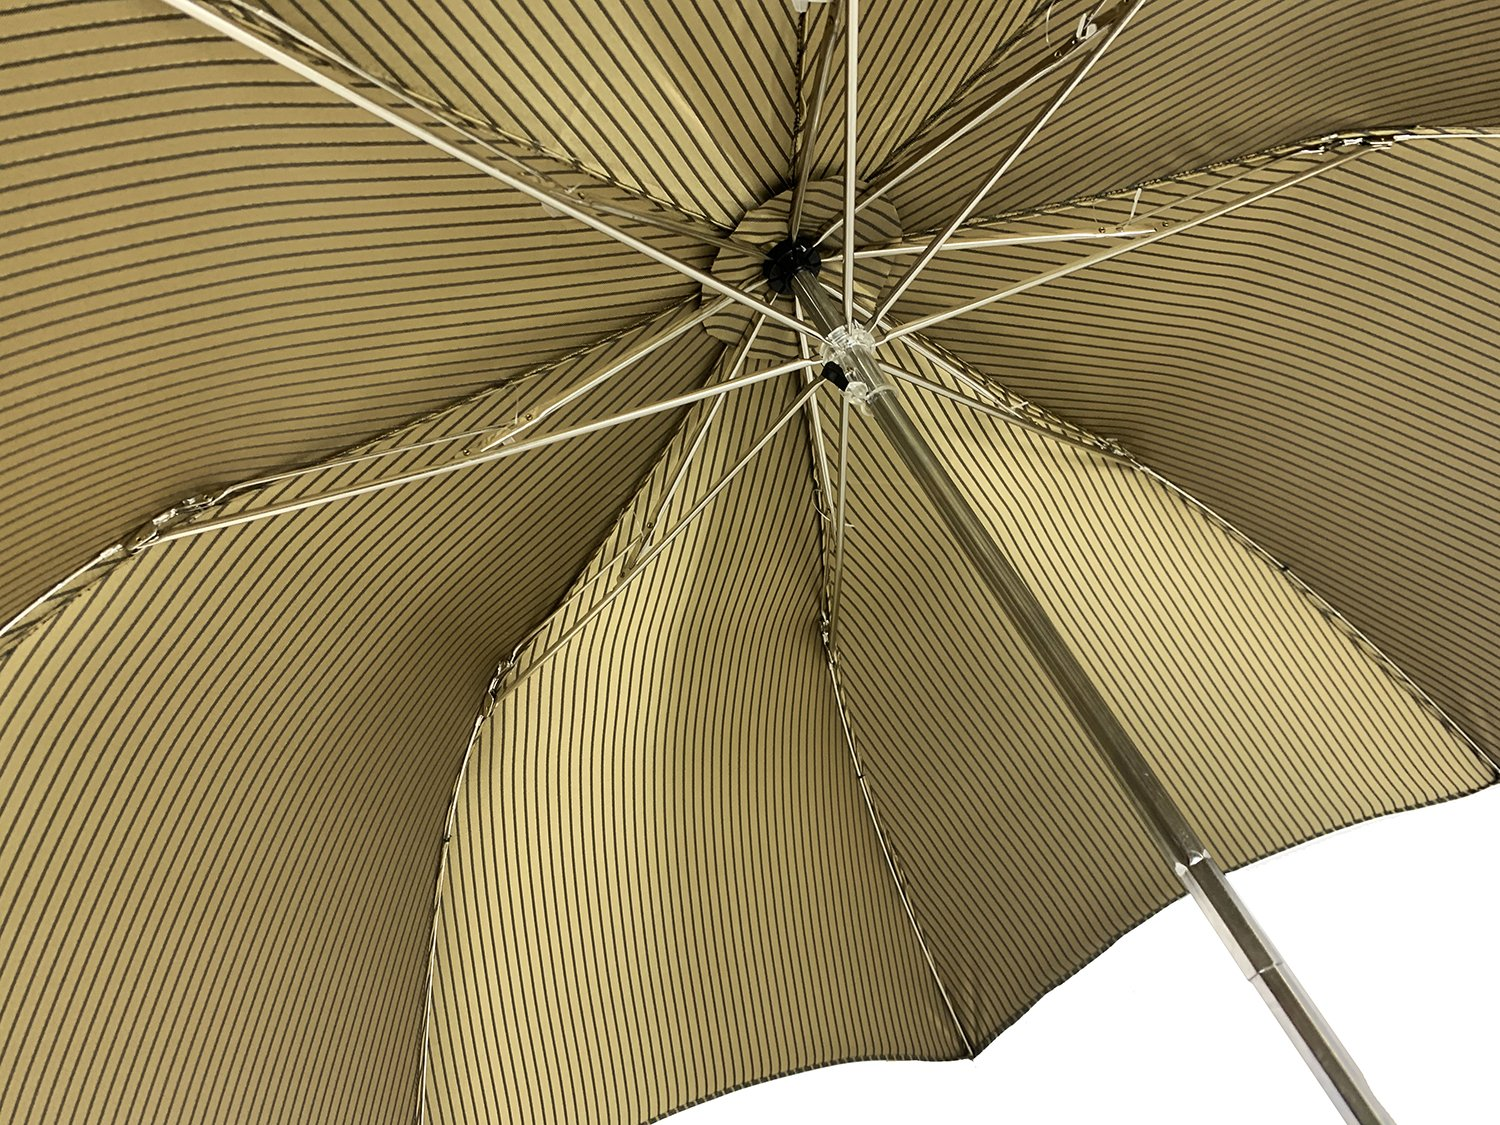 Folding Brown and Gold striped umbrella for men - IL MARCHESATO LUXURY UMBRELLAS, CANES AND SHOEHORNS